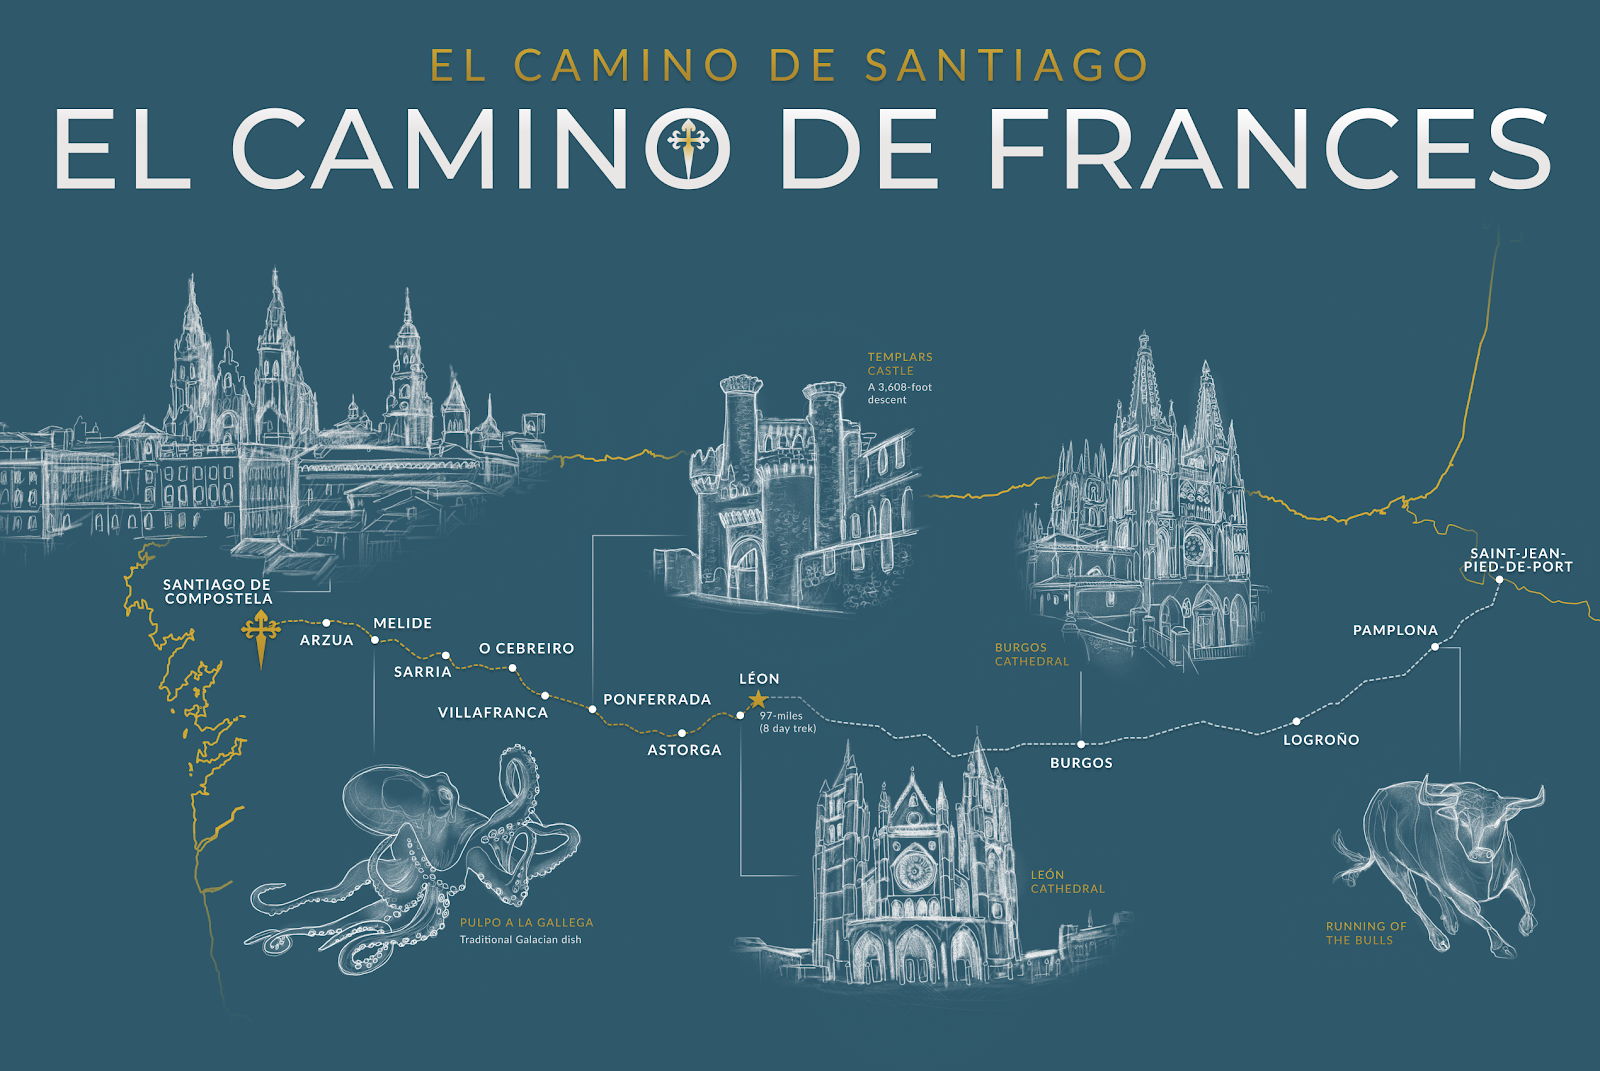 Camino de Frances route map